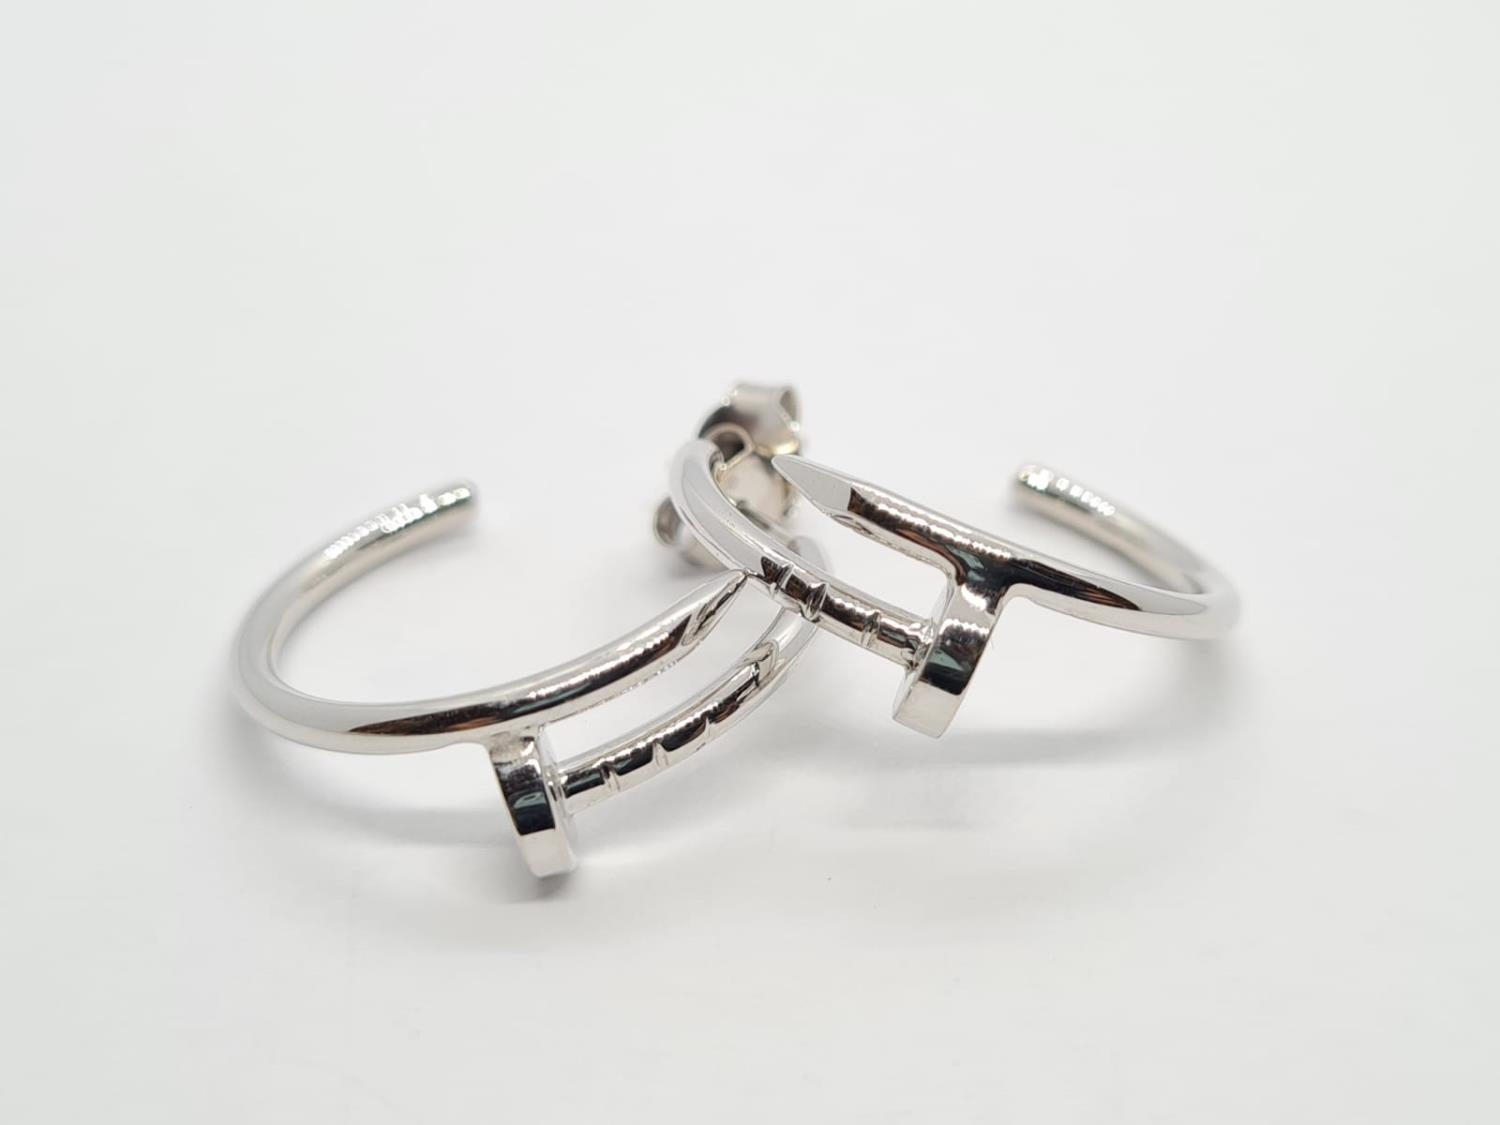 PAIR OF 9CT WHITE GOLD CARTIER STYLE EARRINGS, WEIGHT 5.5G